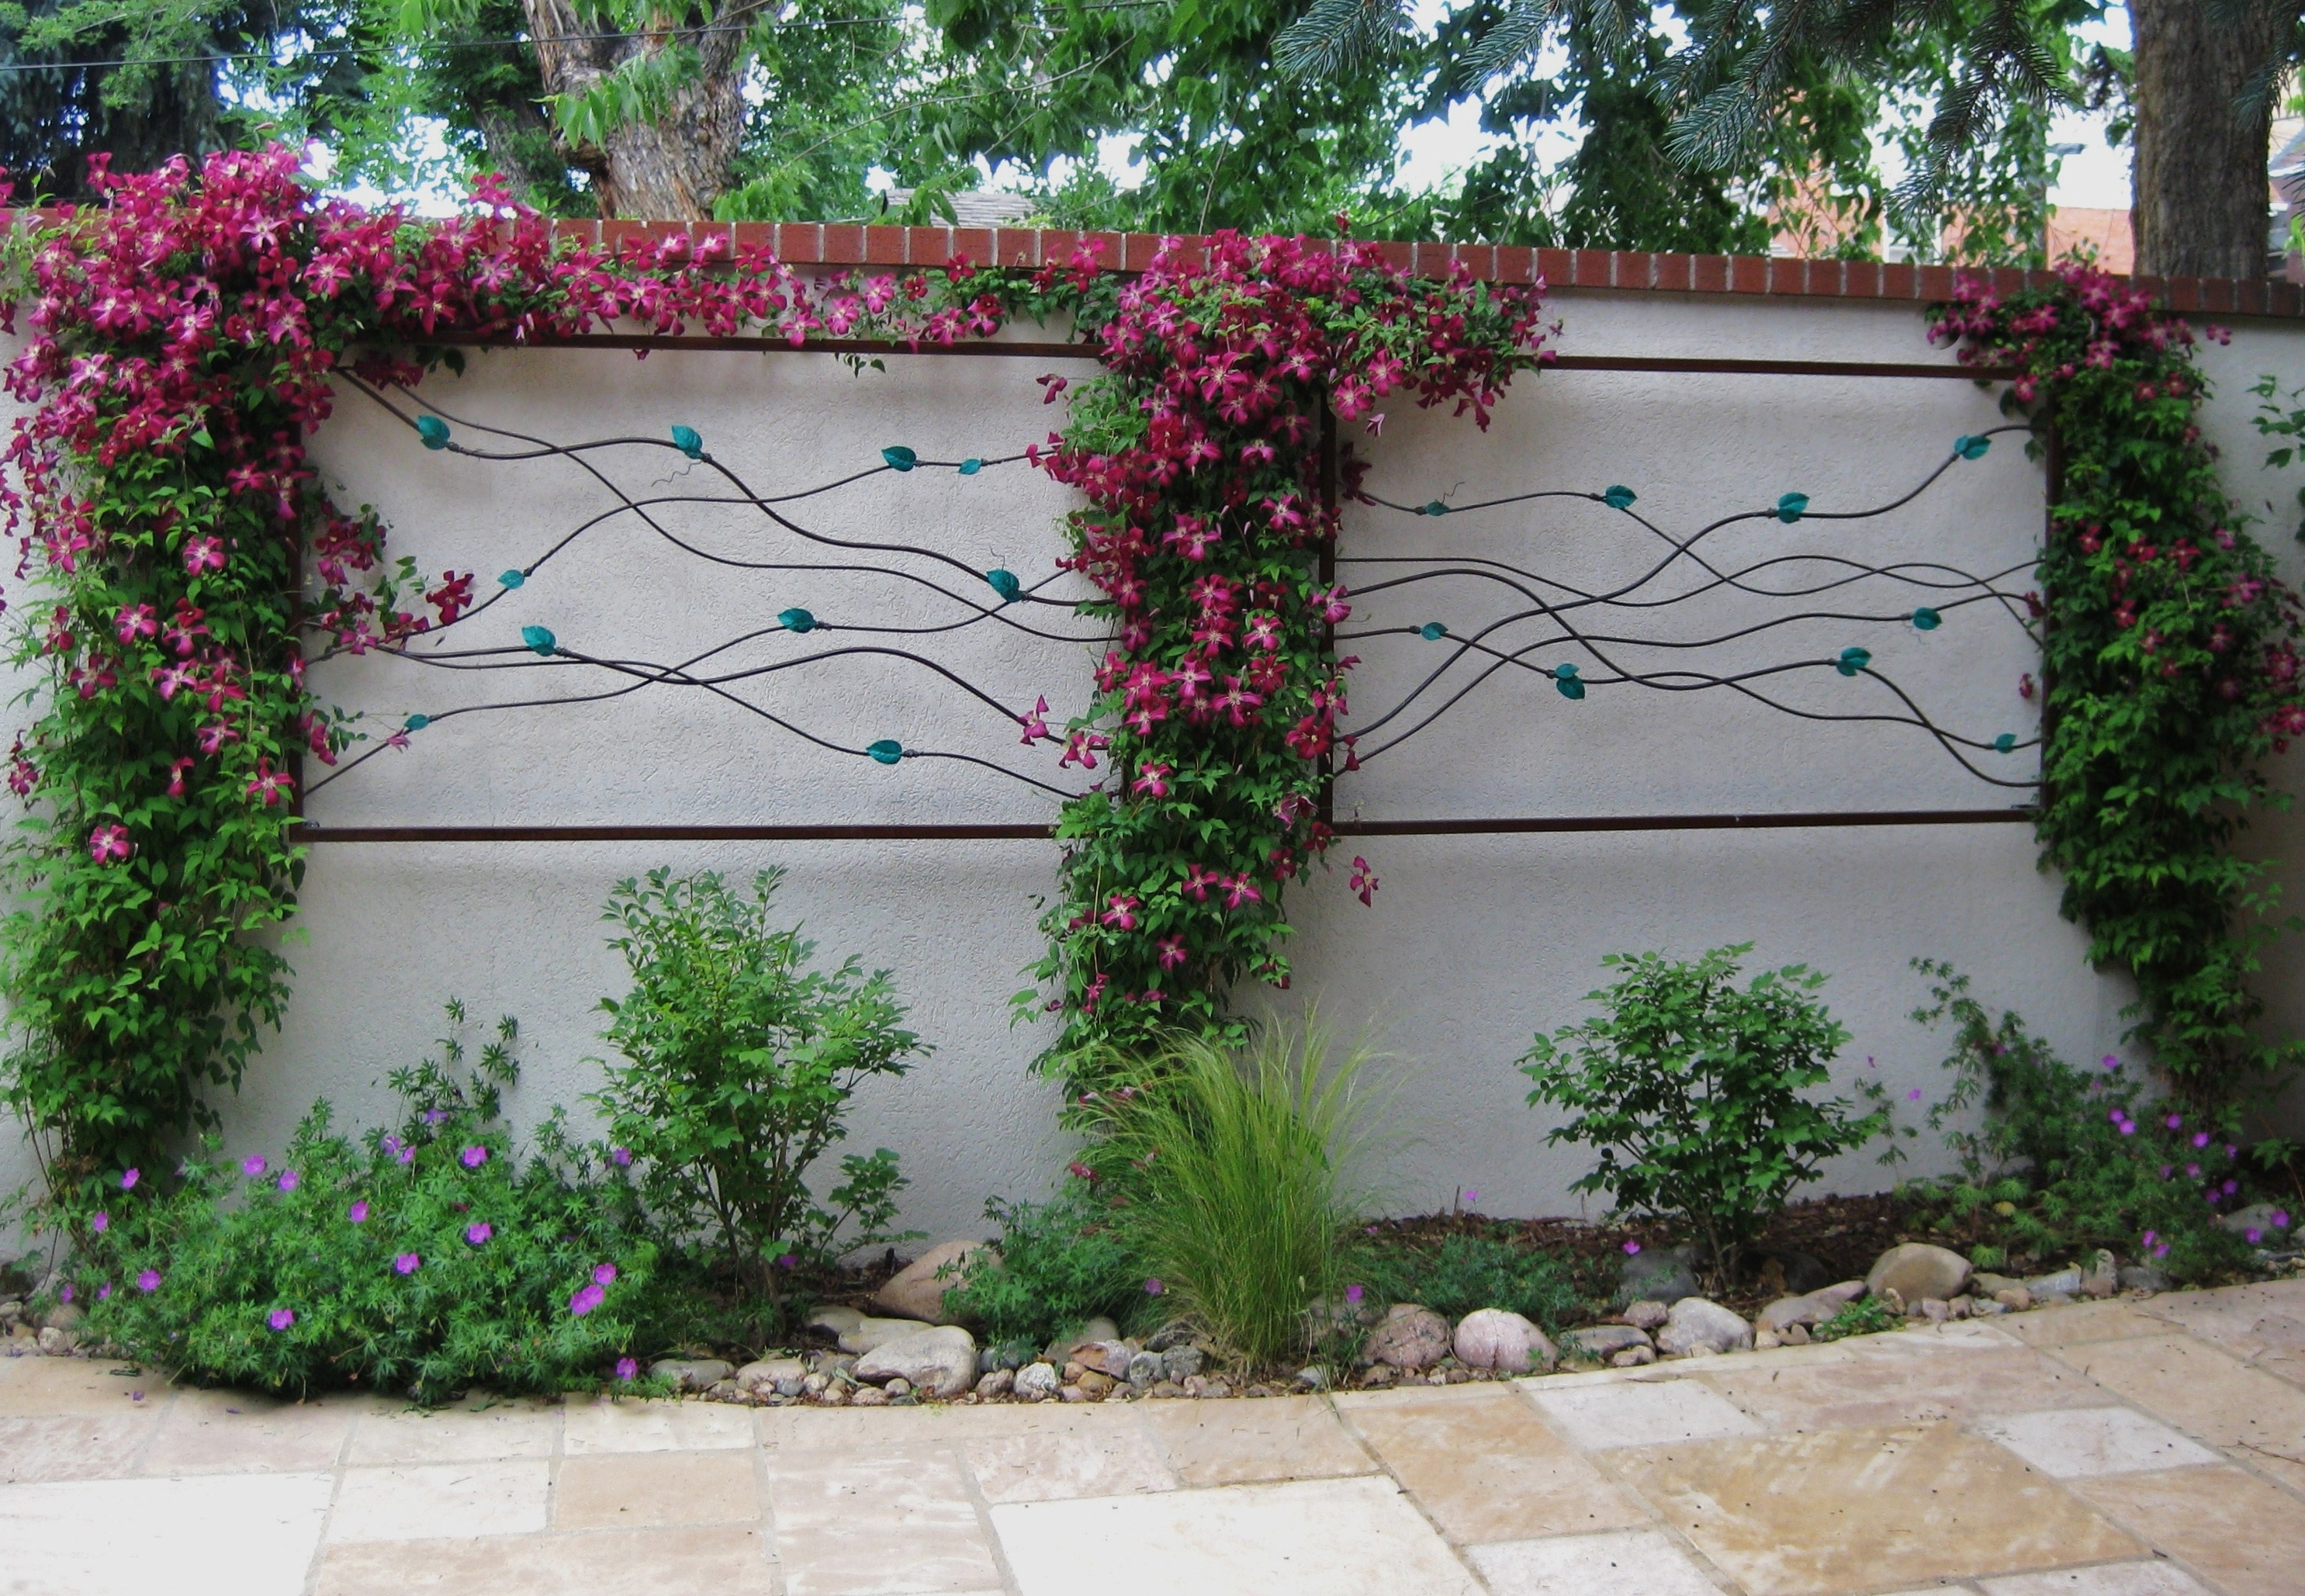 Best Of Wall Art Ideas For Garden (View 9 of 20)